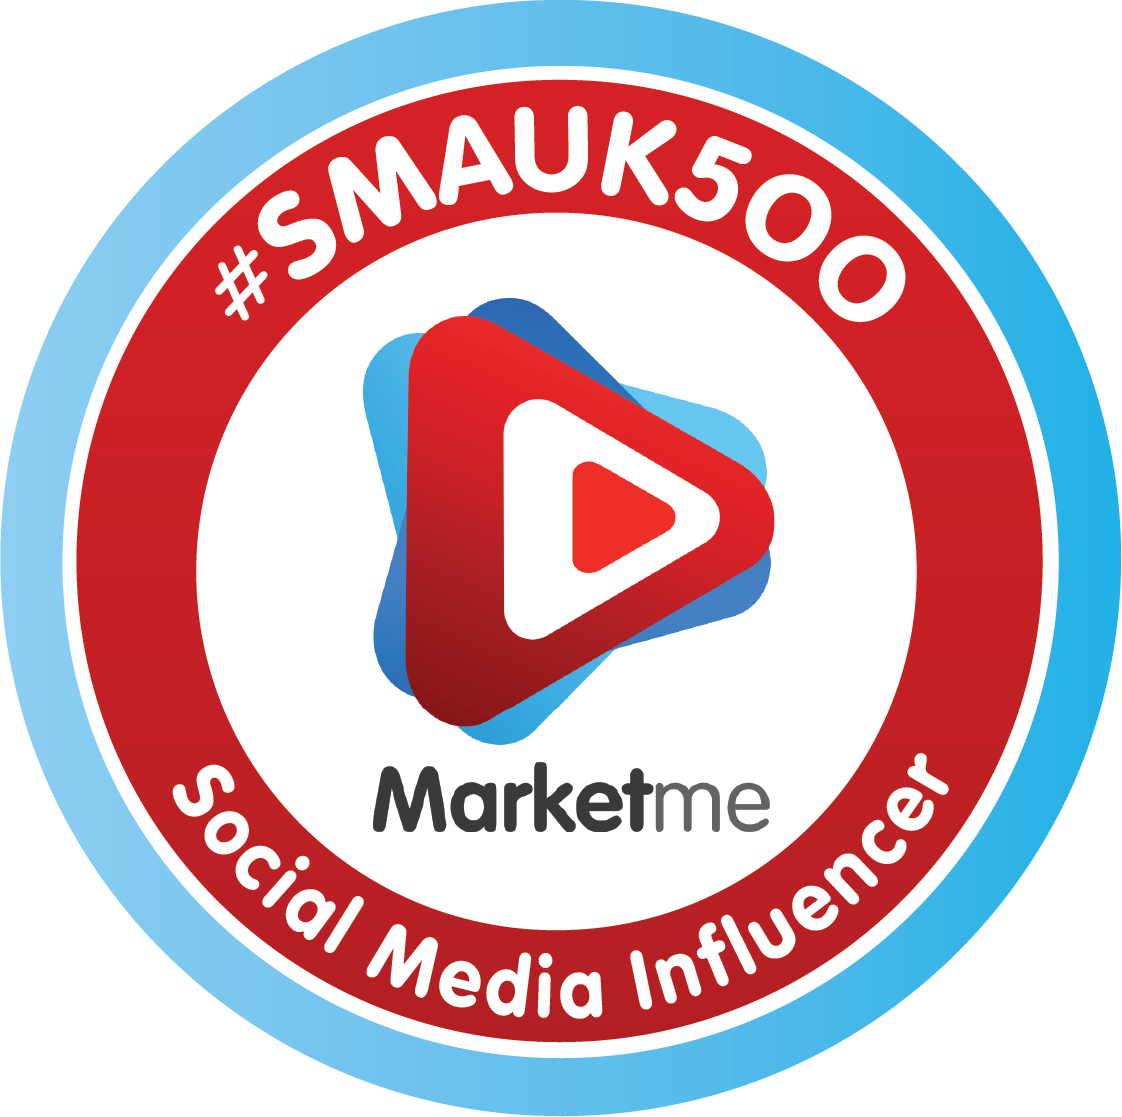 Social Media Agencies Uk #smauk500